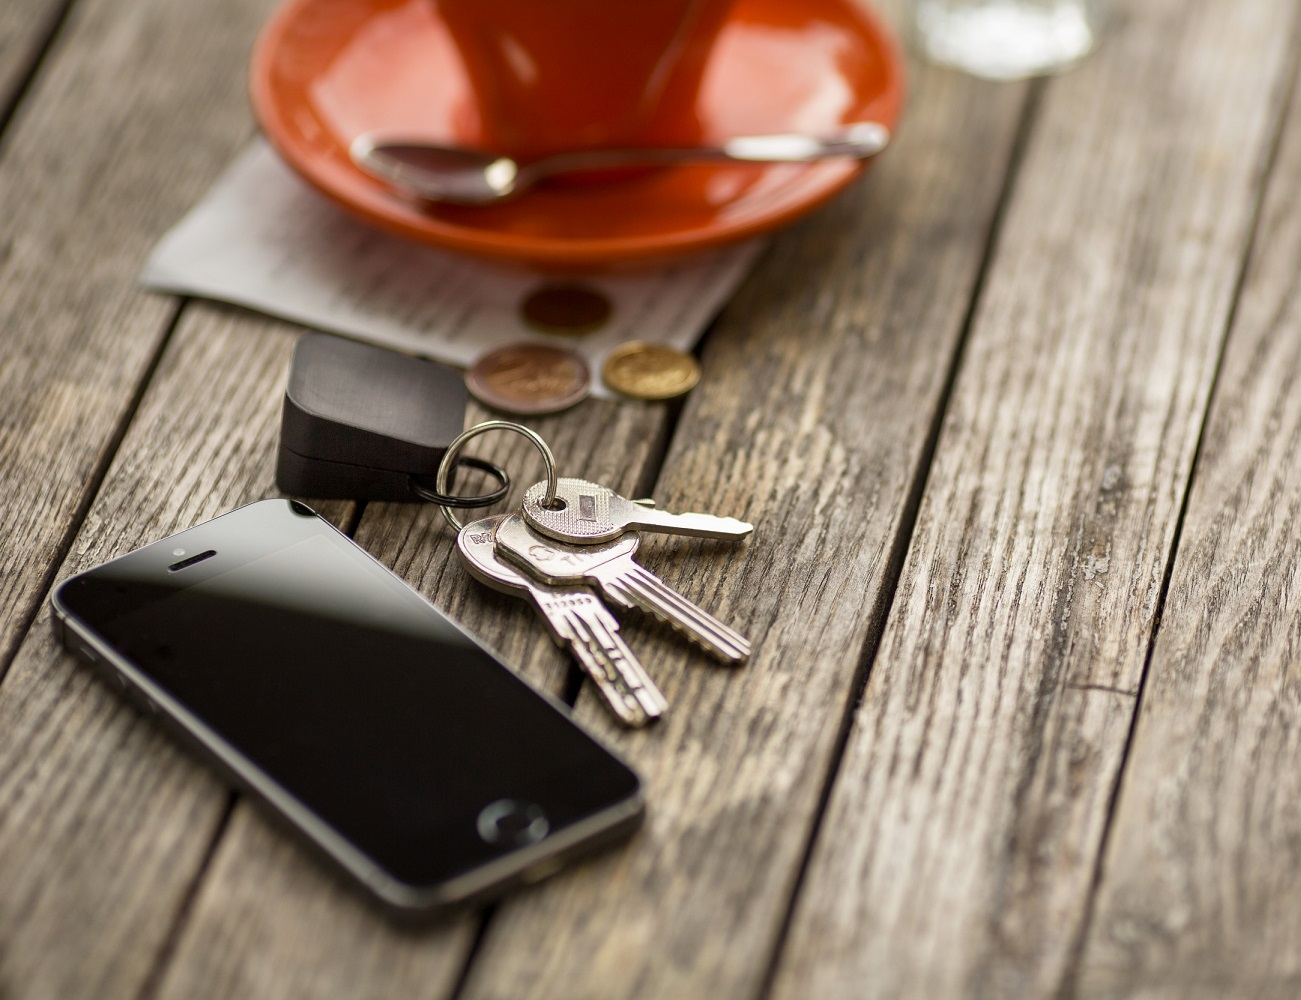 Oivo – The Smallest iPhone Charger On-the-go